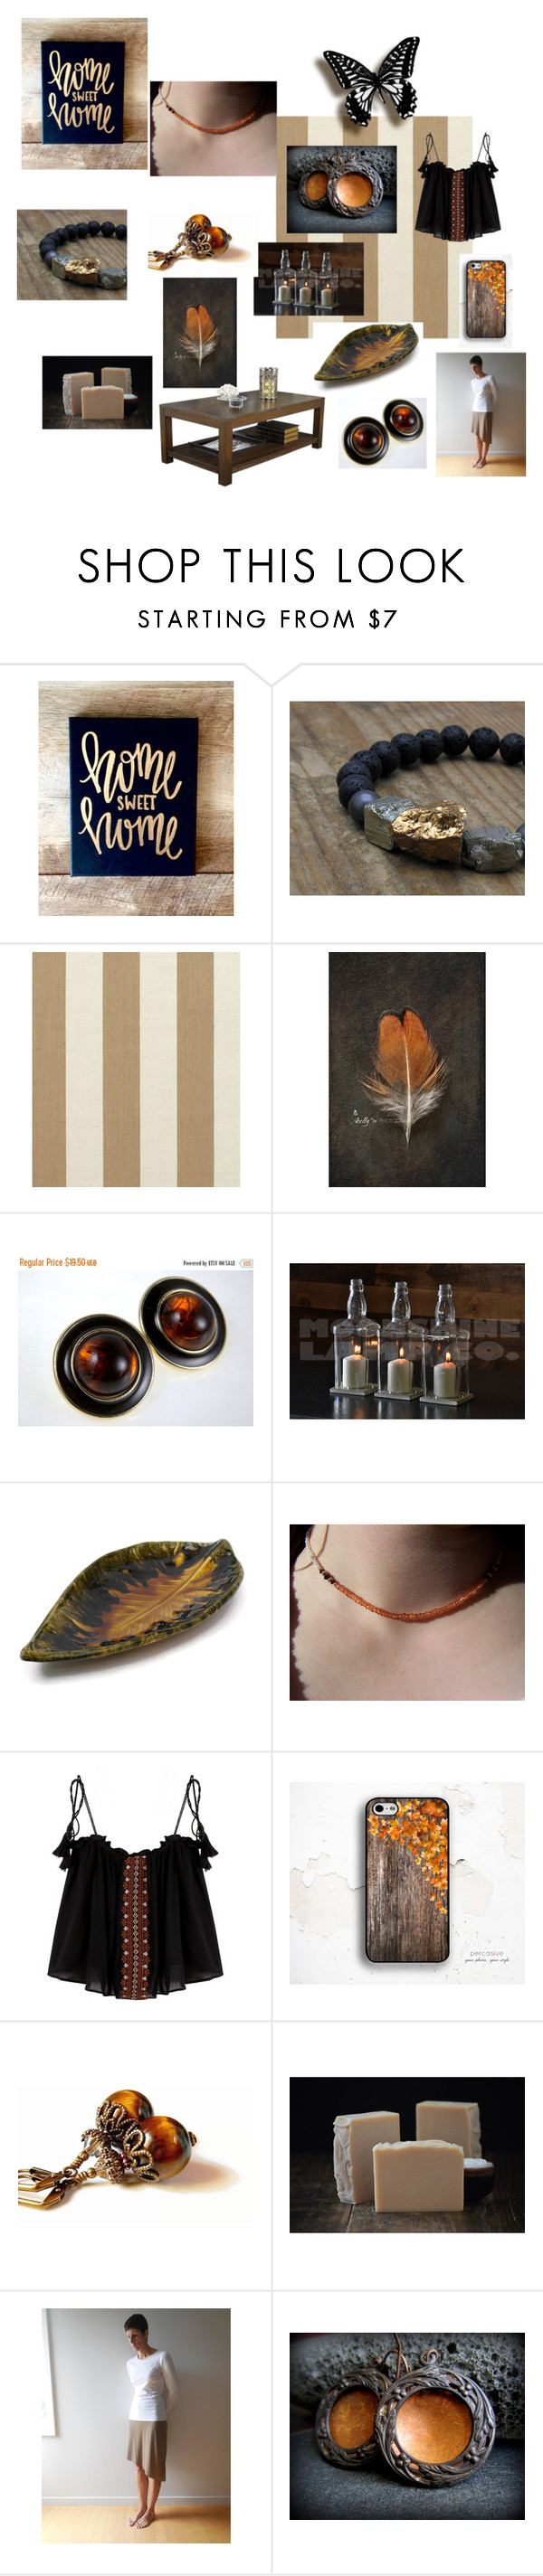 Home Sweet Home by inspiredbyten on Polyvore featuring interior, interiors, interior design, home, home decor, interior decorating, Sunbrella, rustic and etsy